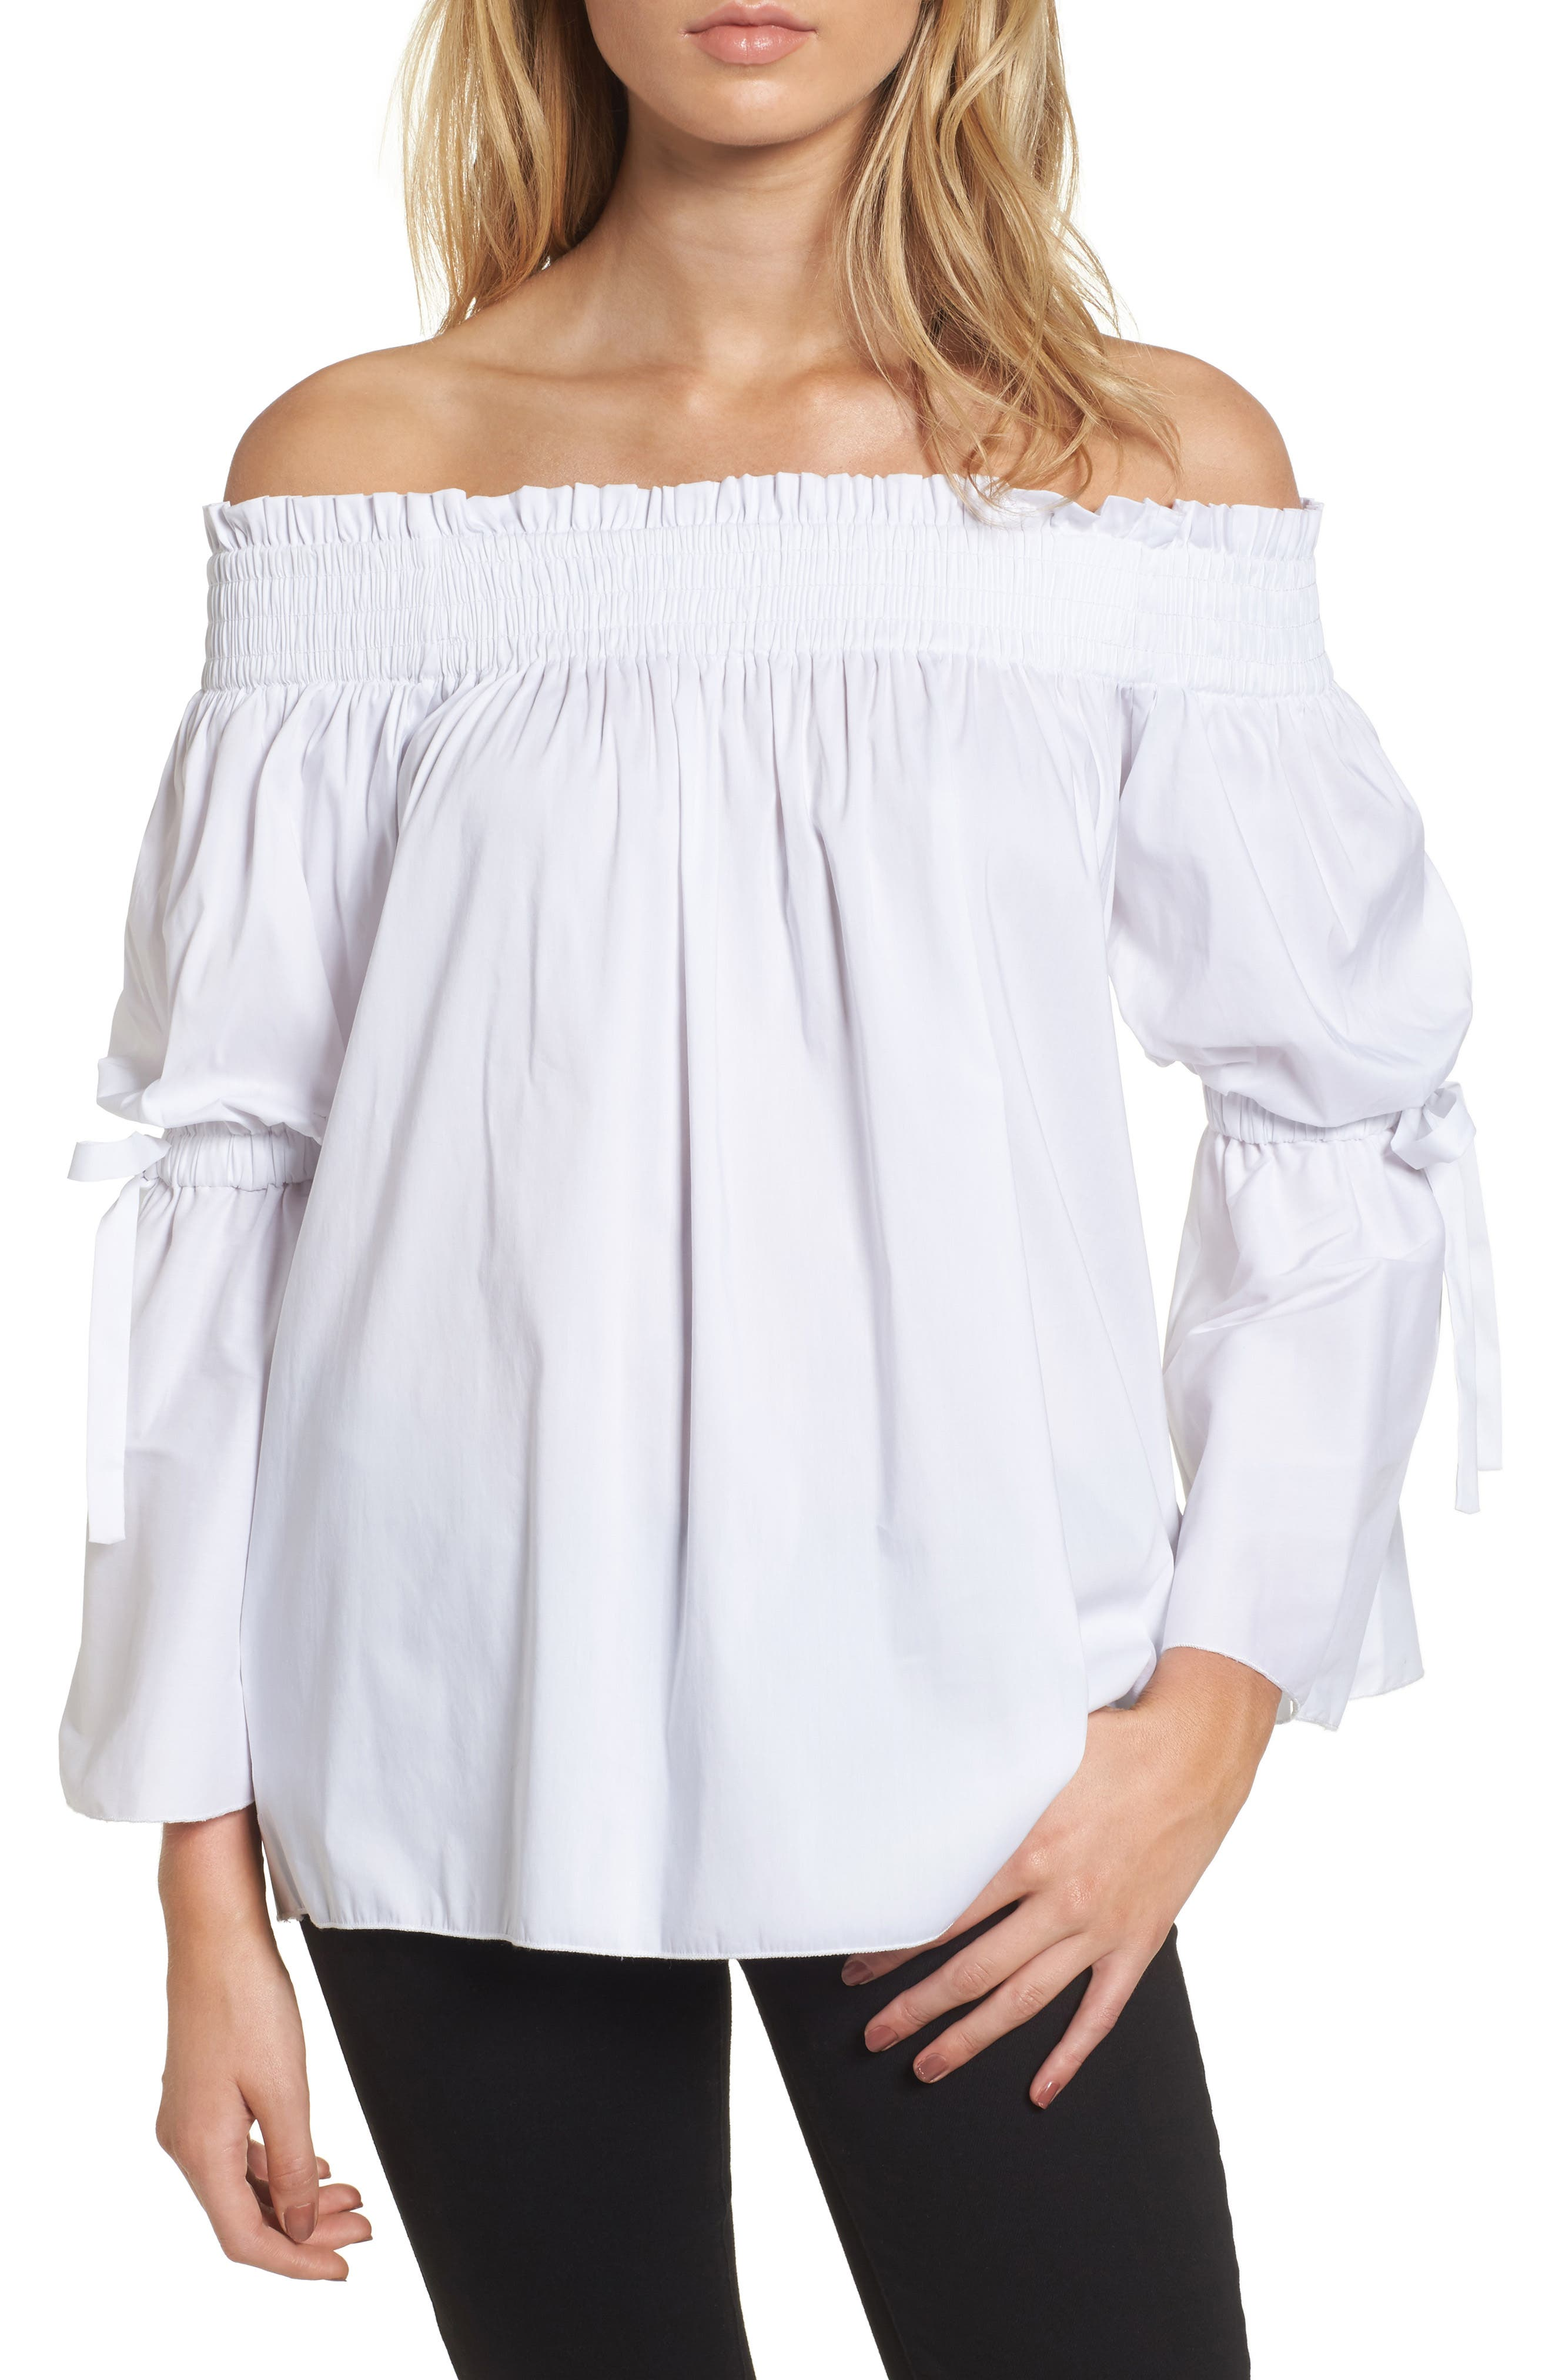 Ominous Stranger Off the Shoulder Top,                             Main thumbnail 1, color,                             White